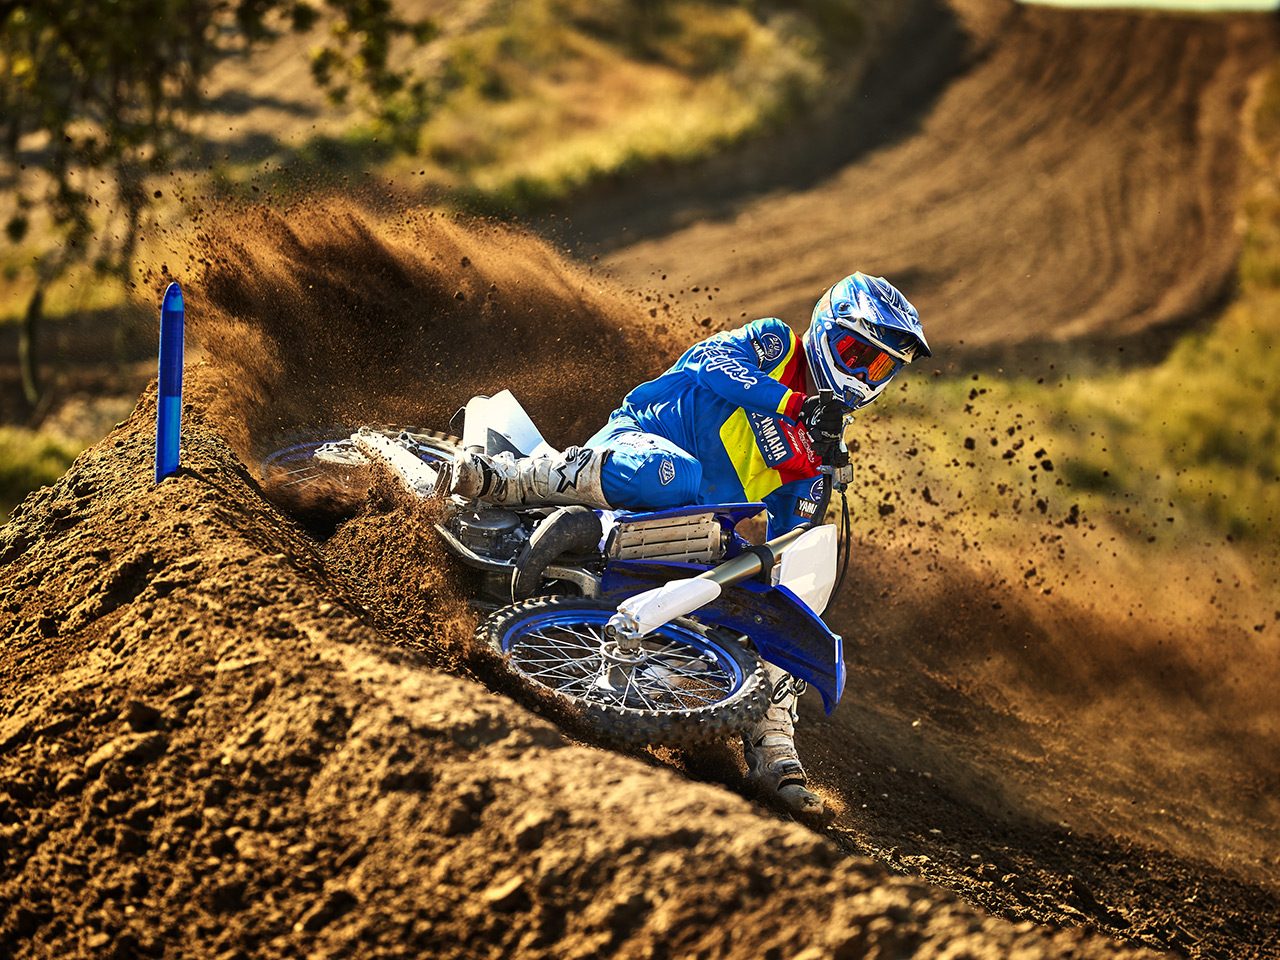 Yamaha YZ125 in team yamaha blue and white colour, being ridden off-track